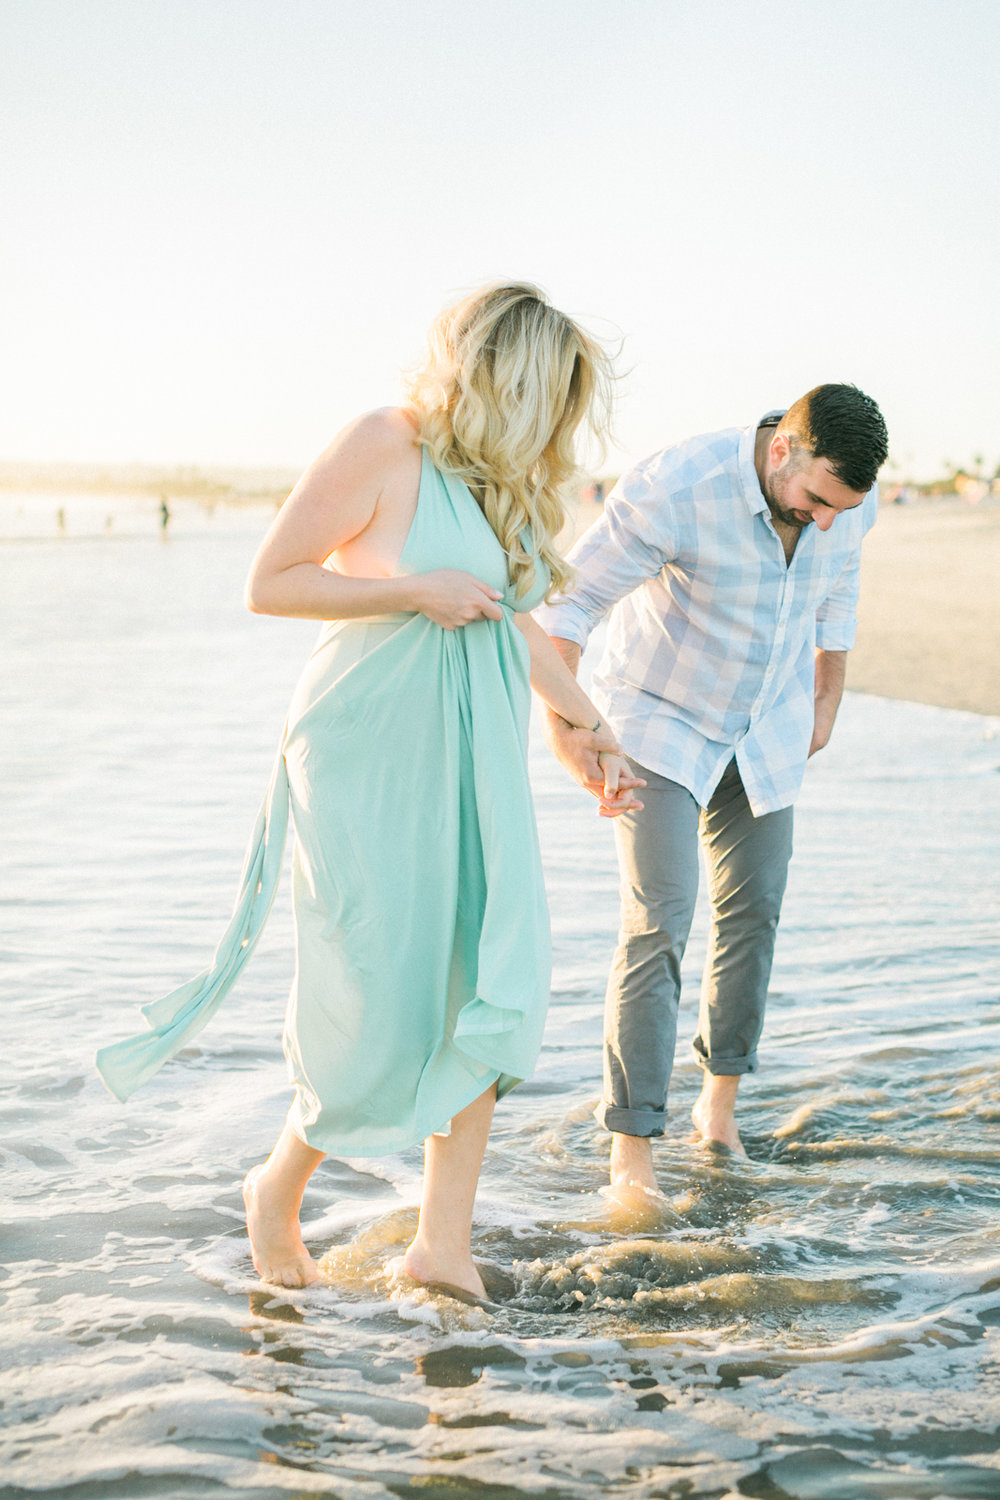 coronado-maternity-photos-11.jpg